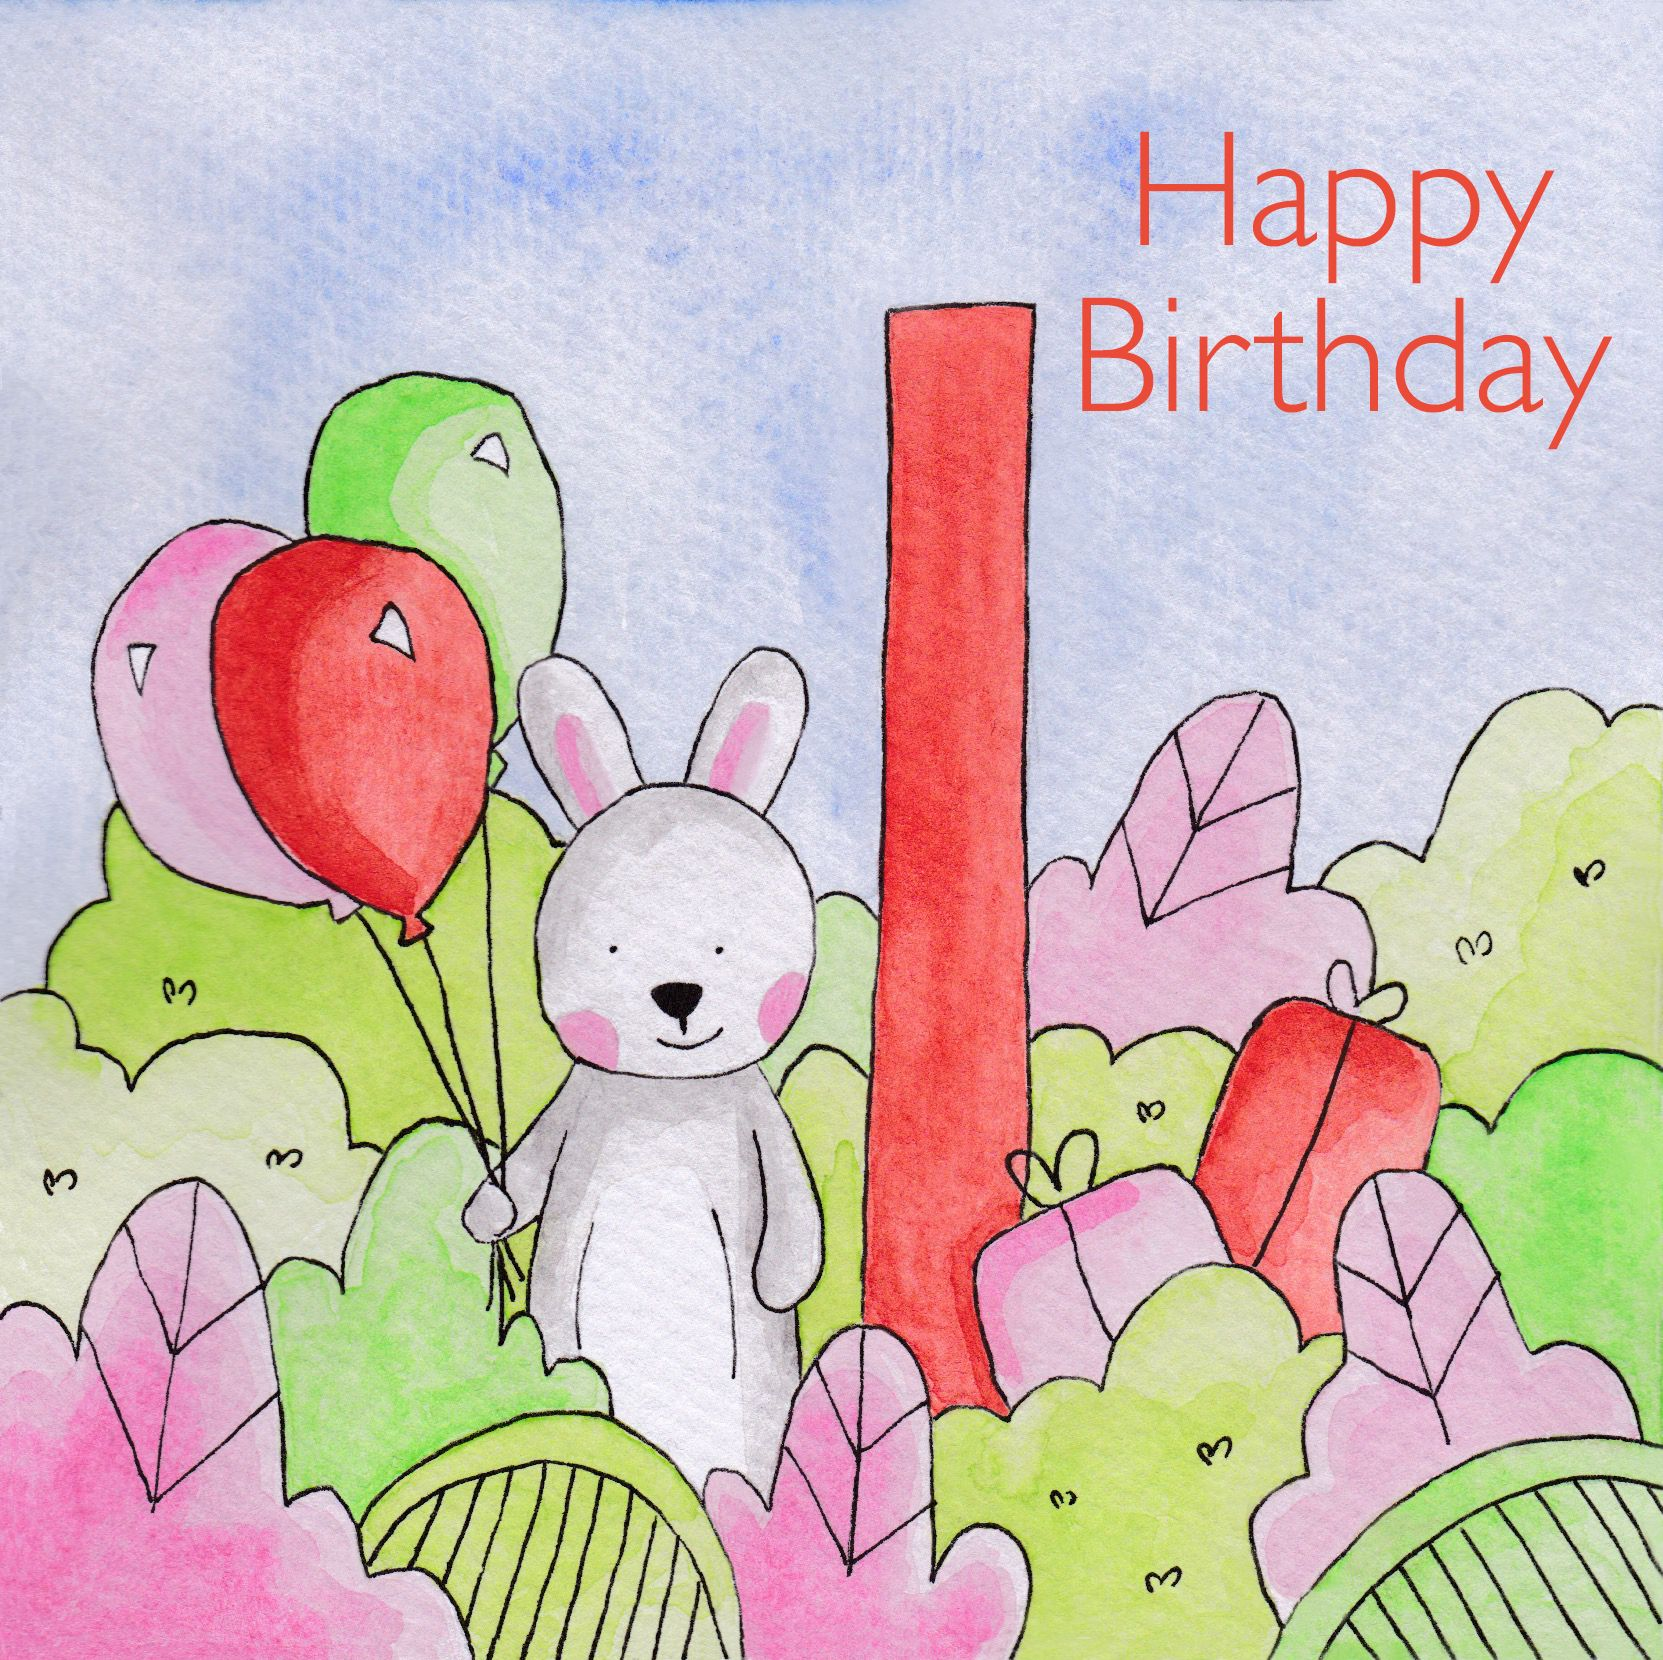 1st Birthday Card For Boys And Girls 2 50 Birthday Rabbit Watercolour Contemporary Blank Cards 1st Birthday Cards Birthday Cards For Boys Happy 2nd Birthday